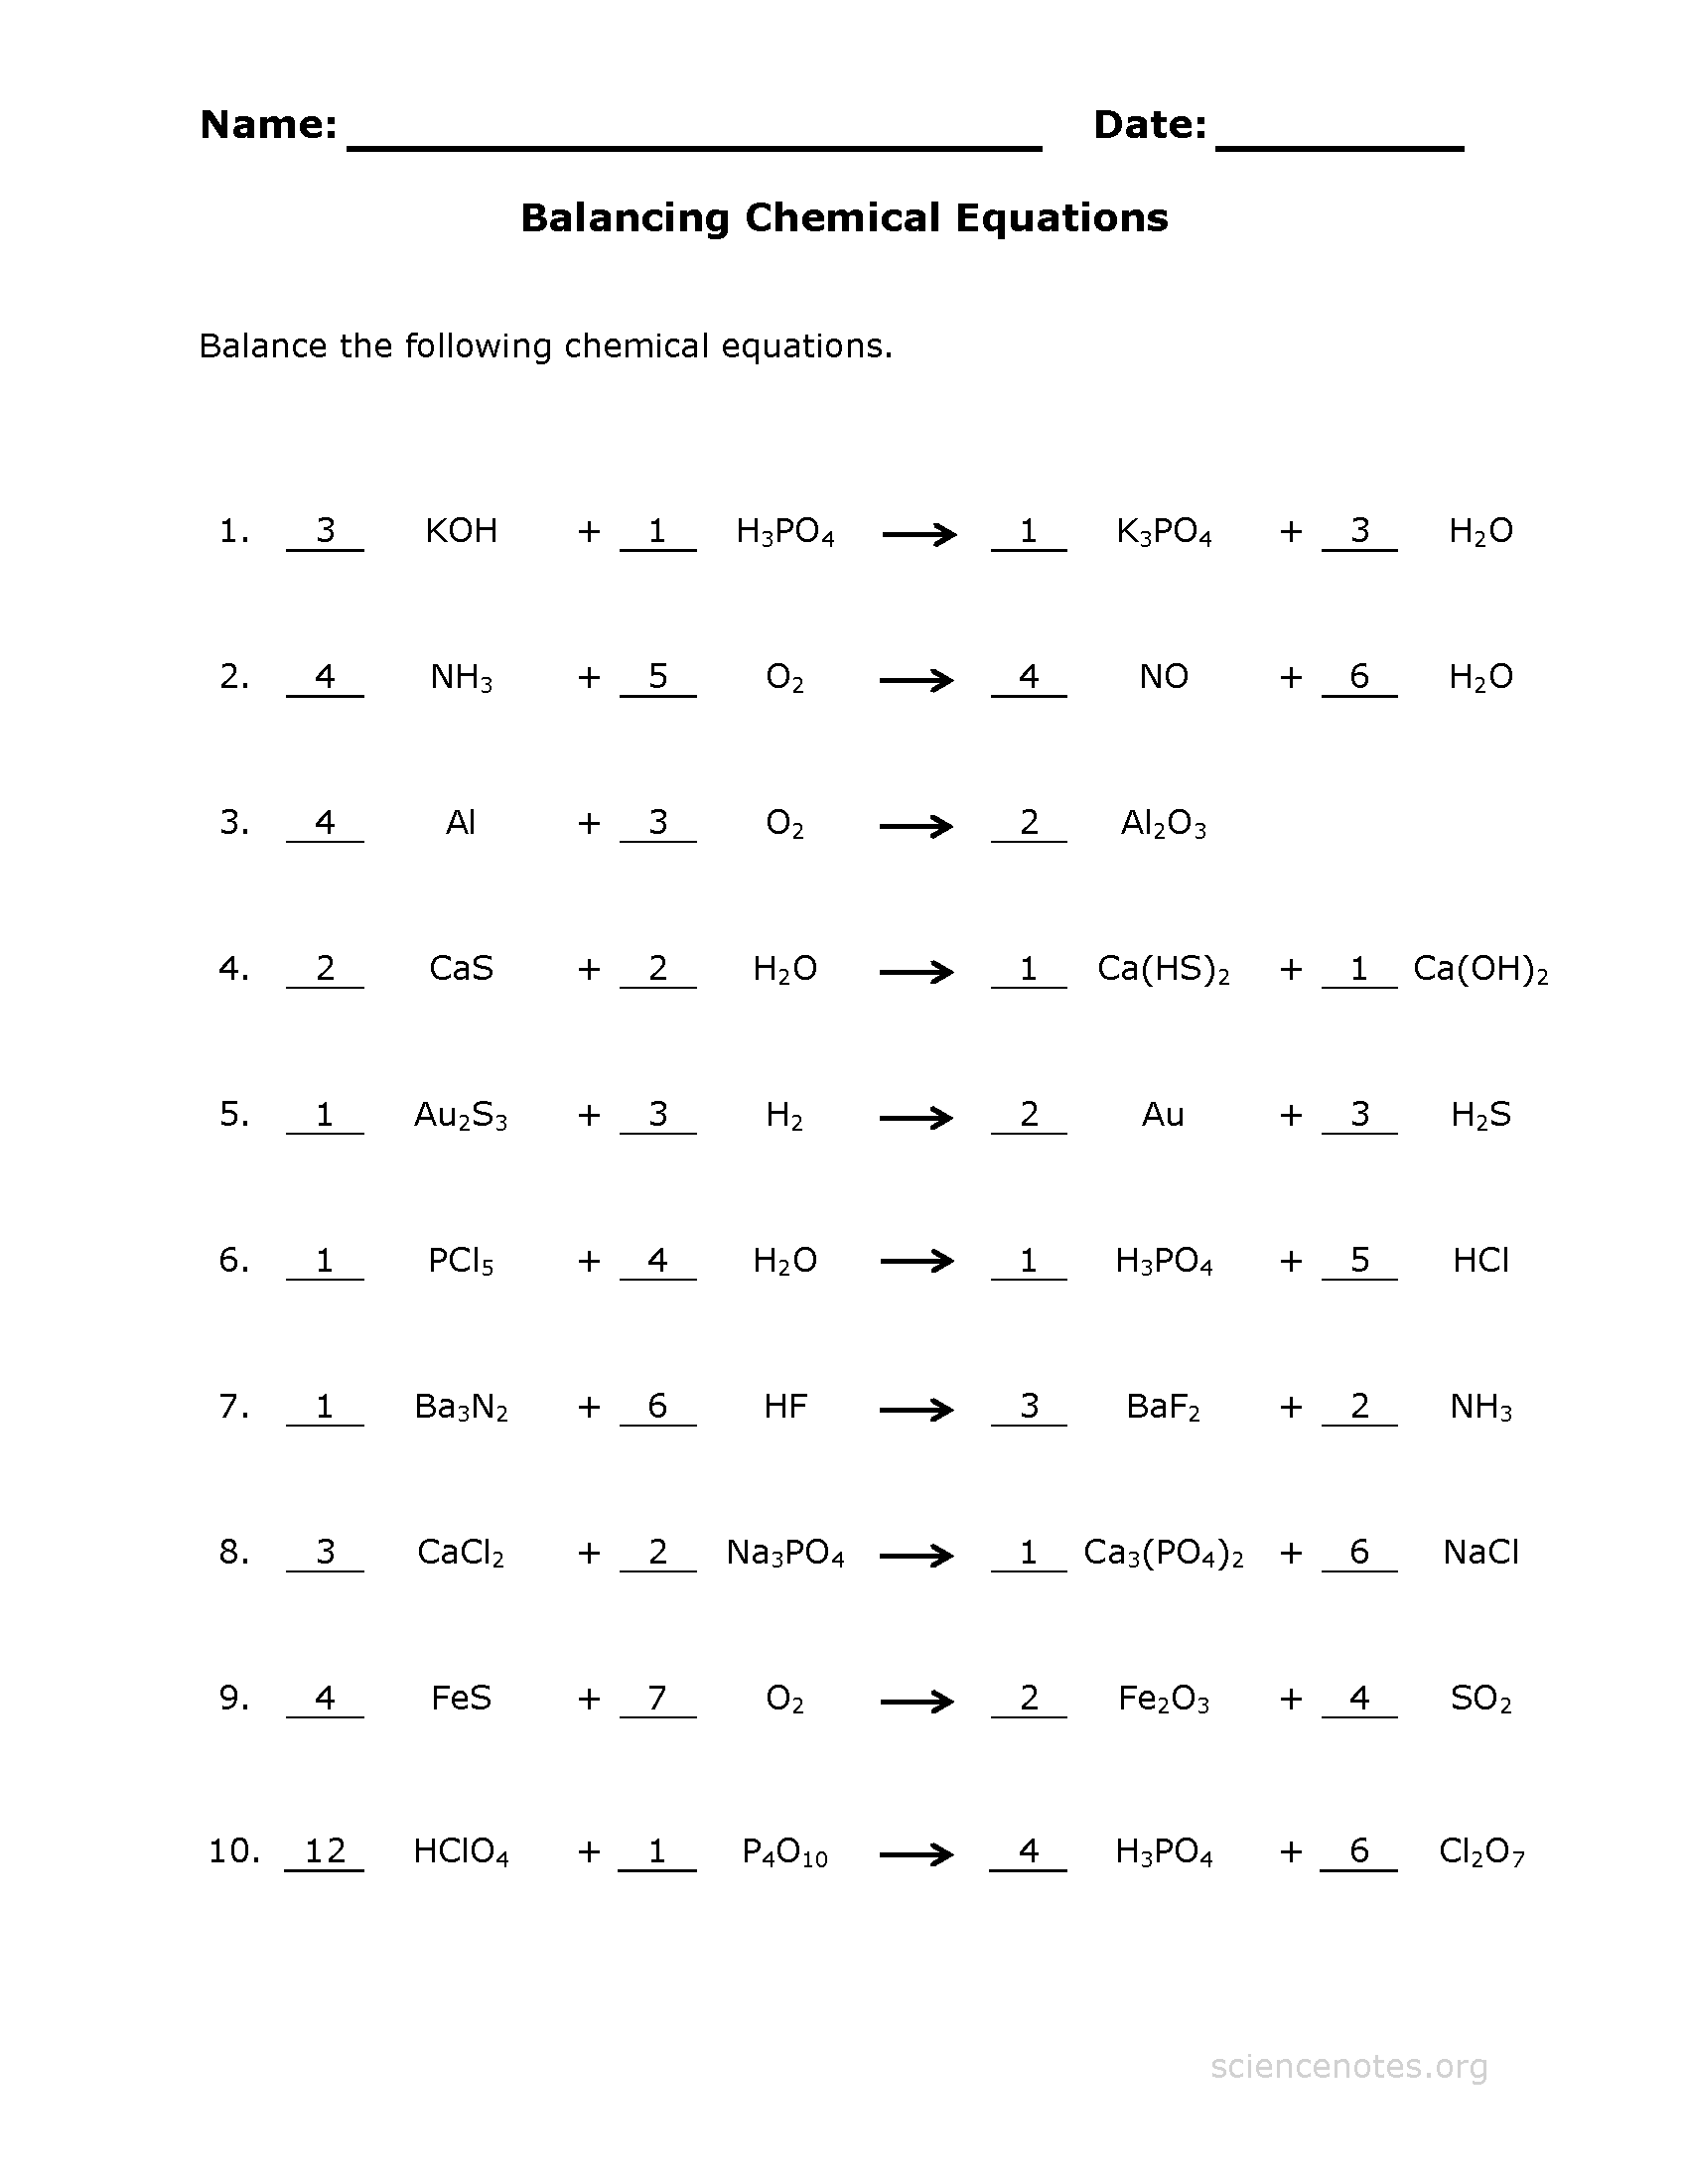 Worksheets Easy Balancing Equations Worksheet balancing chemical equations practice sheet to see the completed check out our other equation worksheets